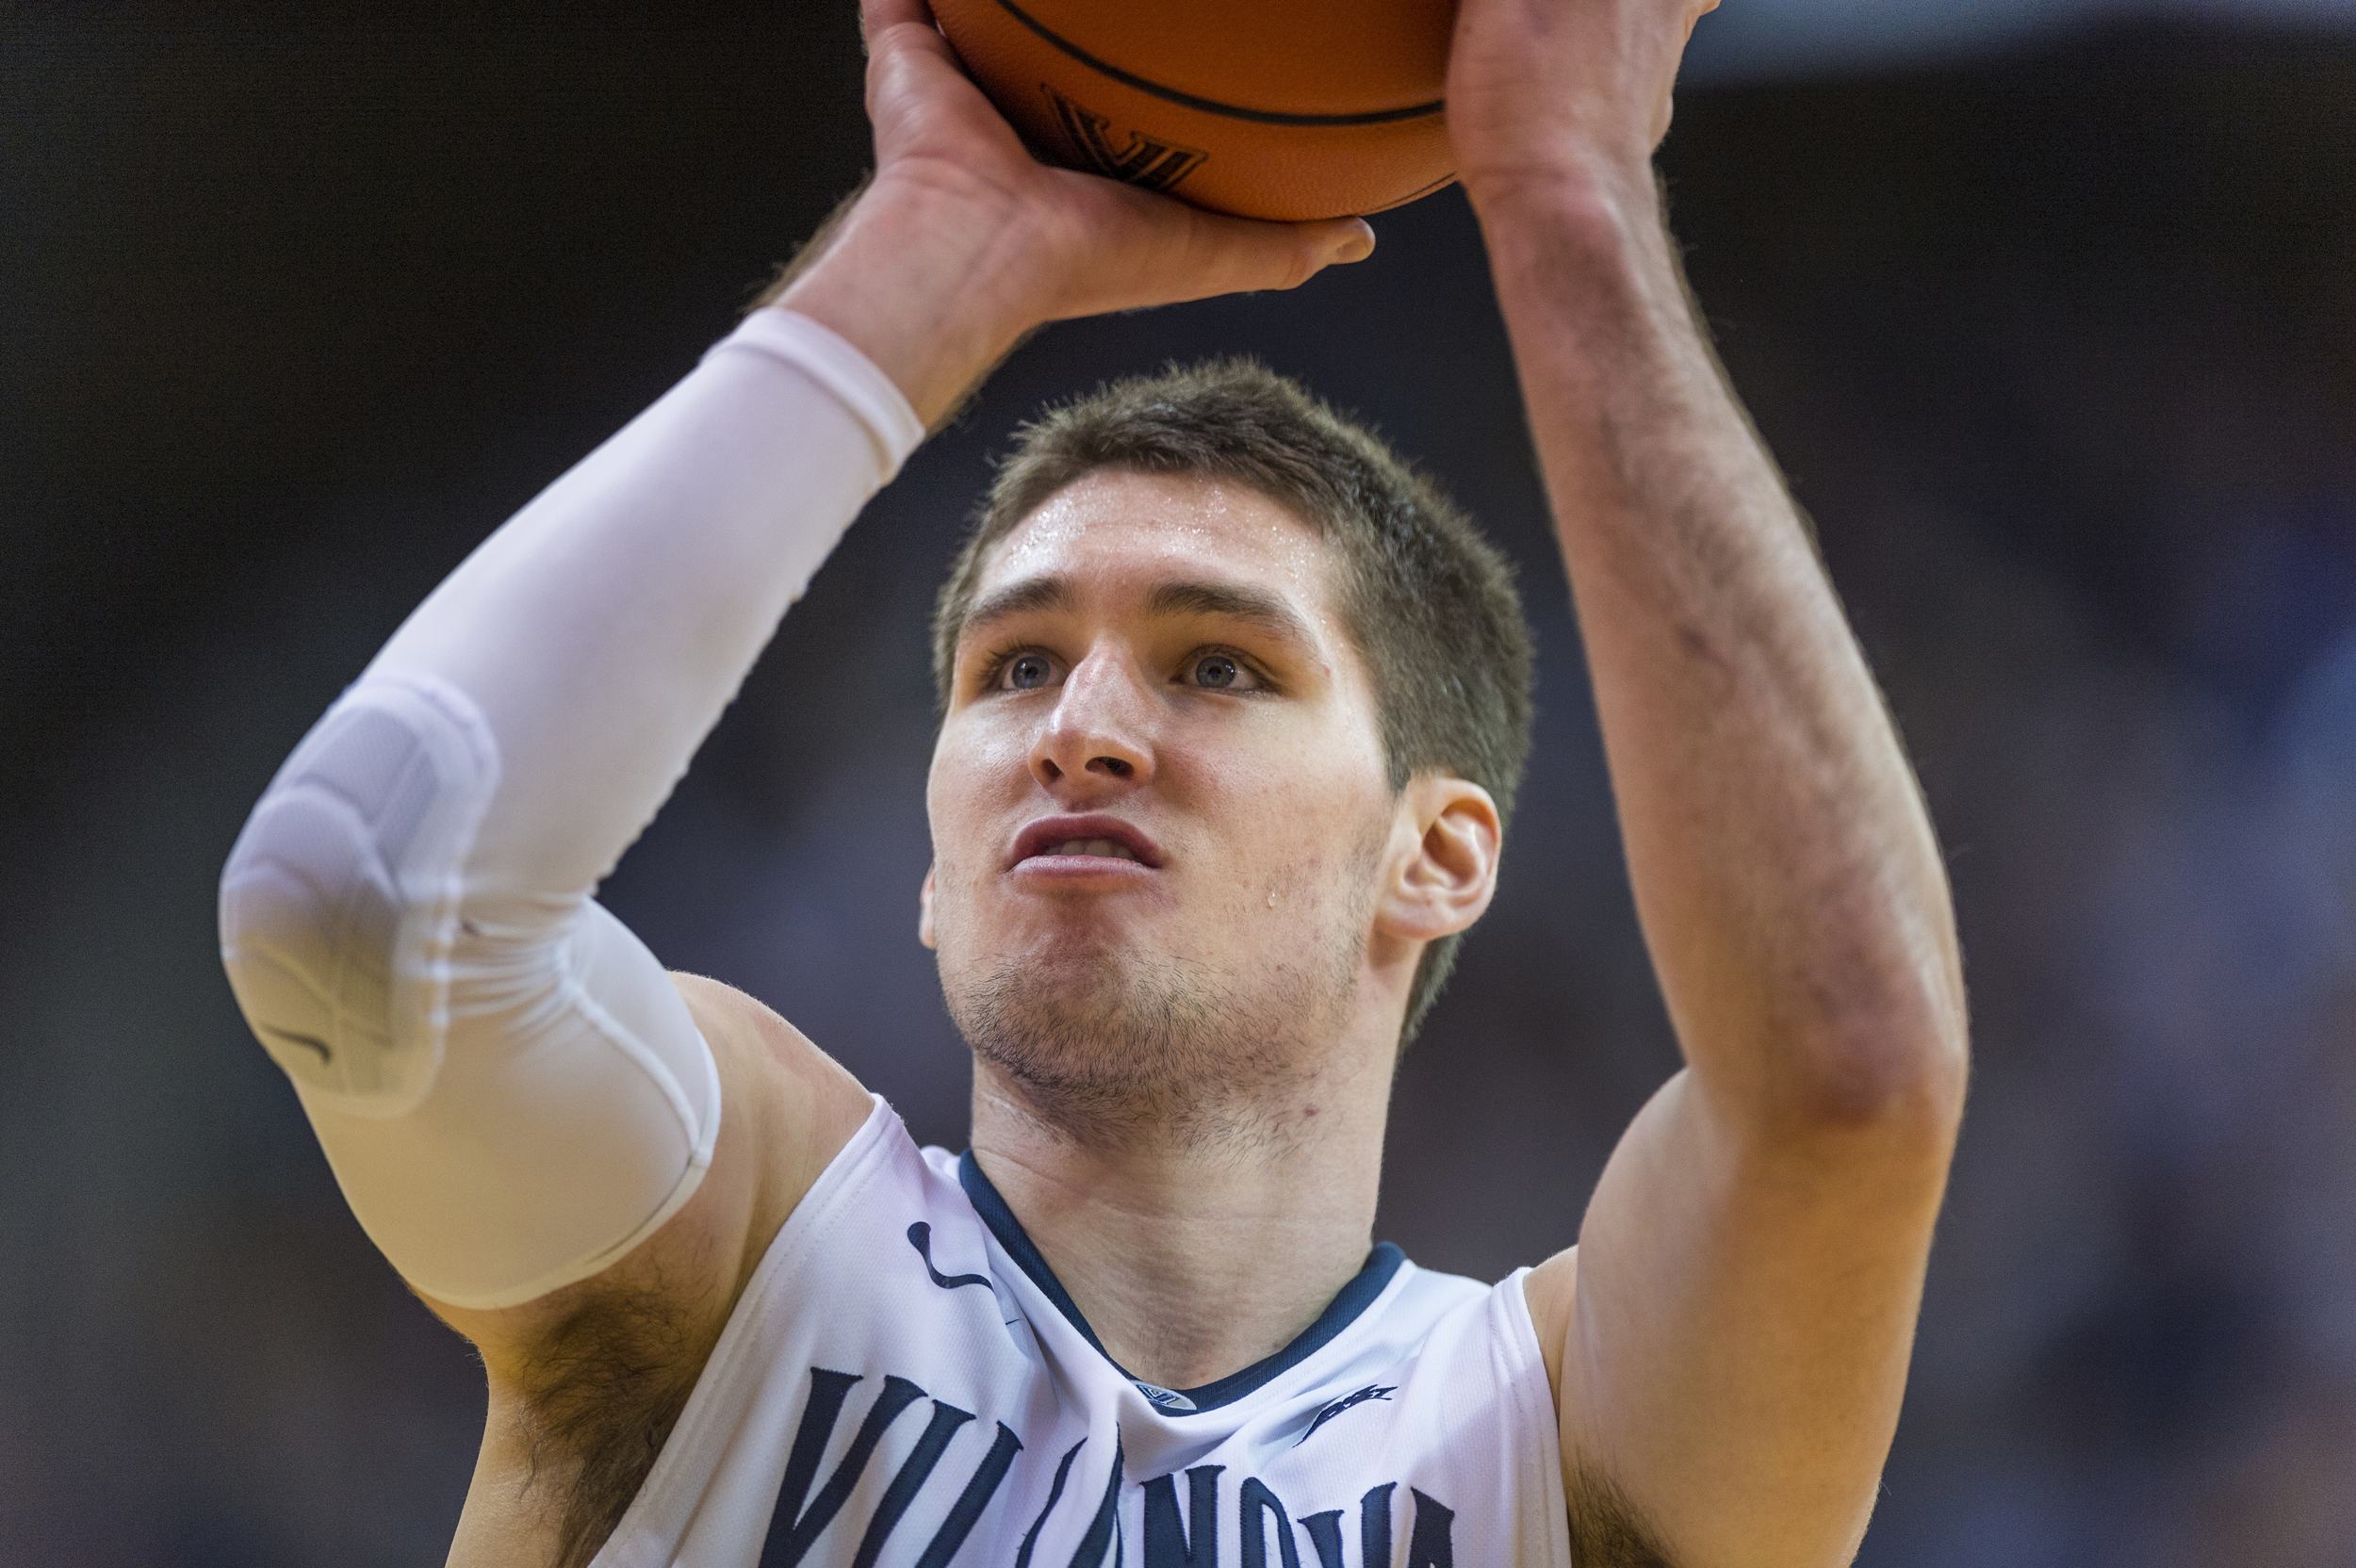 28 December 2015: Villanova Wildcats guard Ryan Arcidiacono (15) at the free throw line during the NCAA men's basketball game between the Penn Quakers and the Villanova Wildcats played at Pavillion in Villanova, PA. (Photo by Gavin Baker/Icon Sportswire)